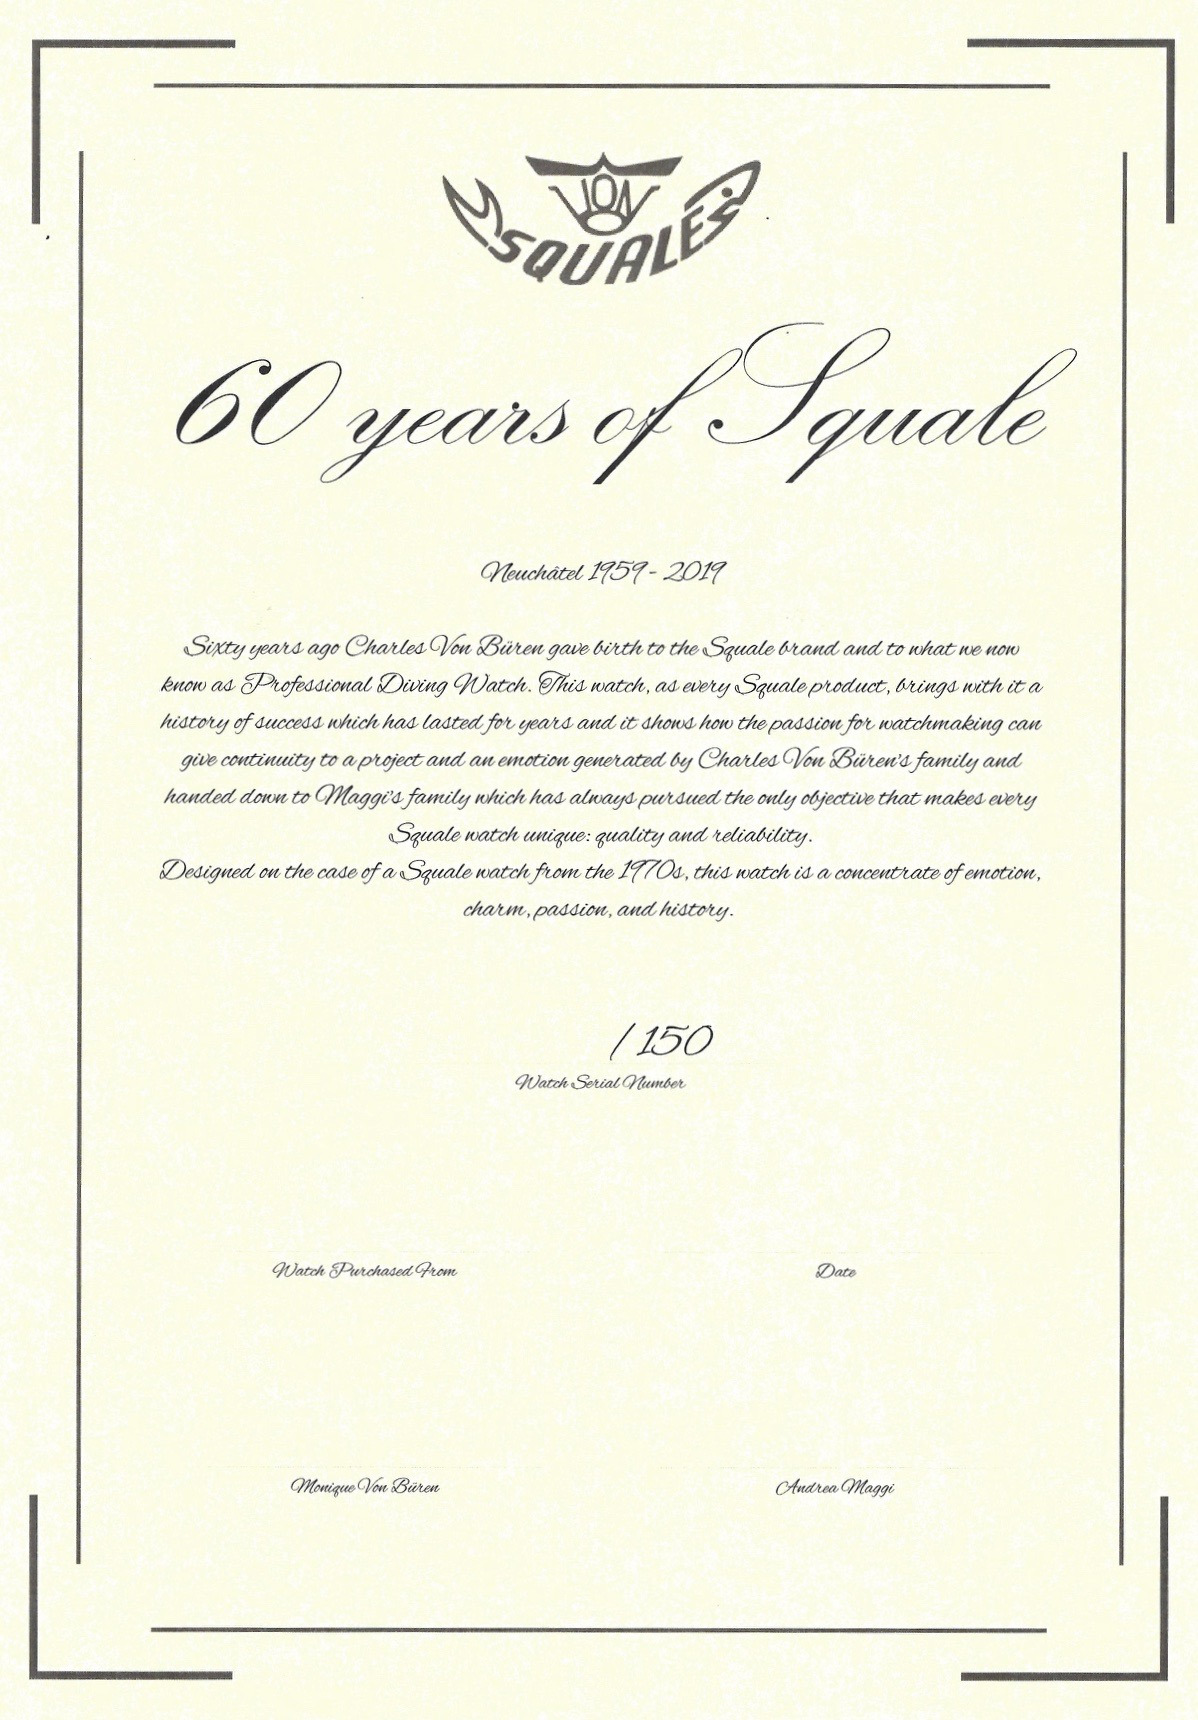 Squale 60 Year Limited Edition Signed Certificate